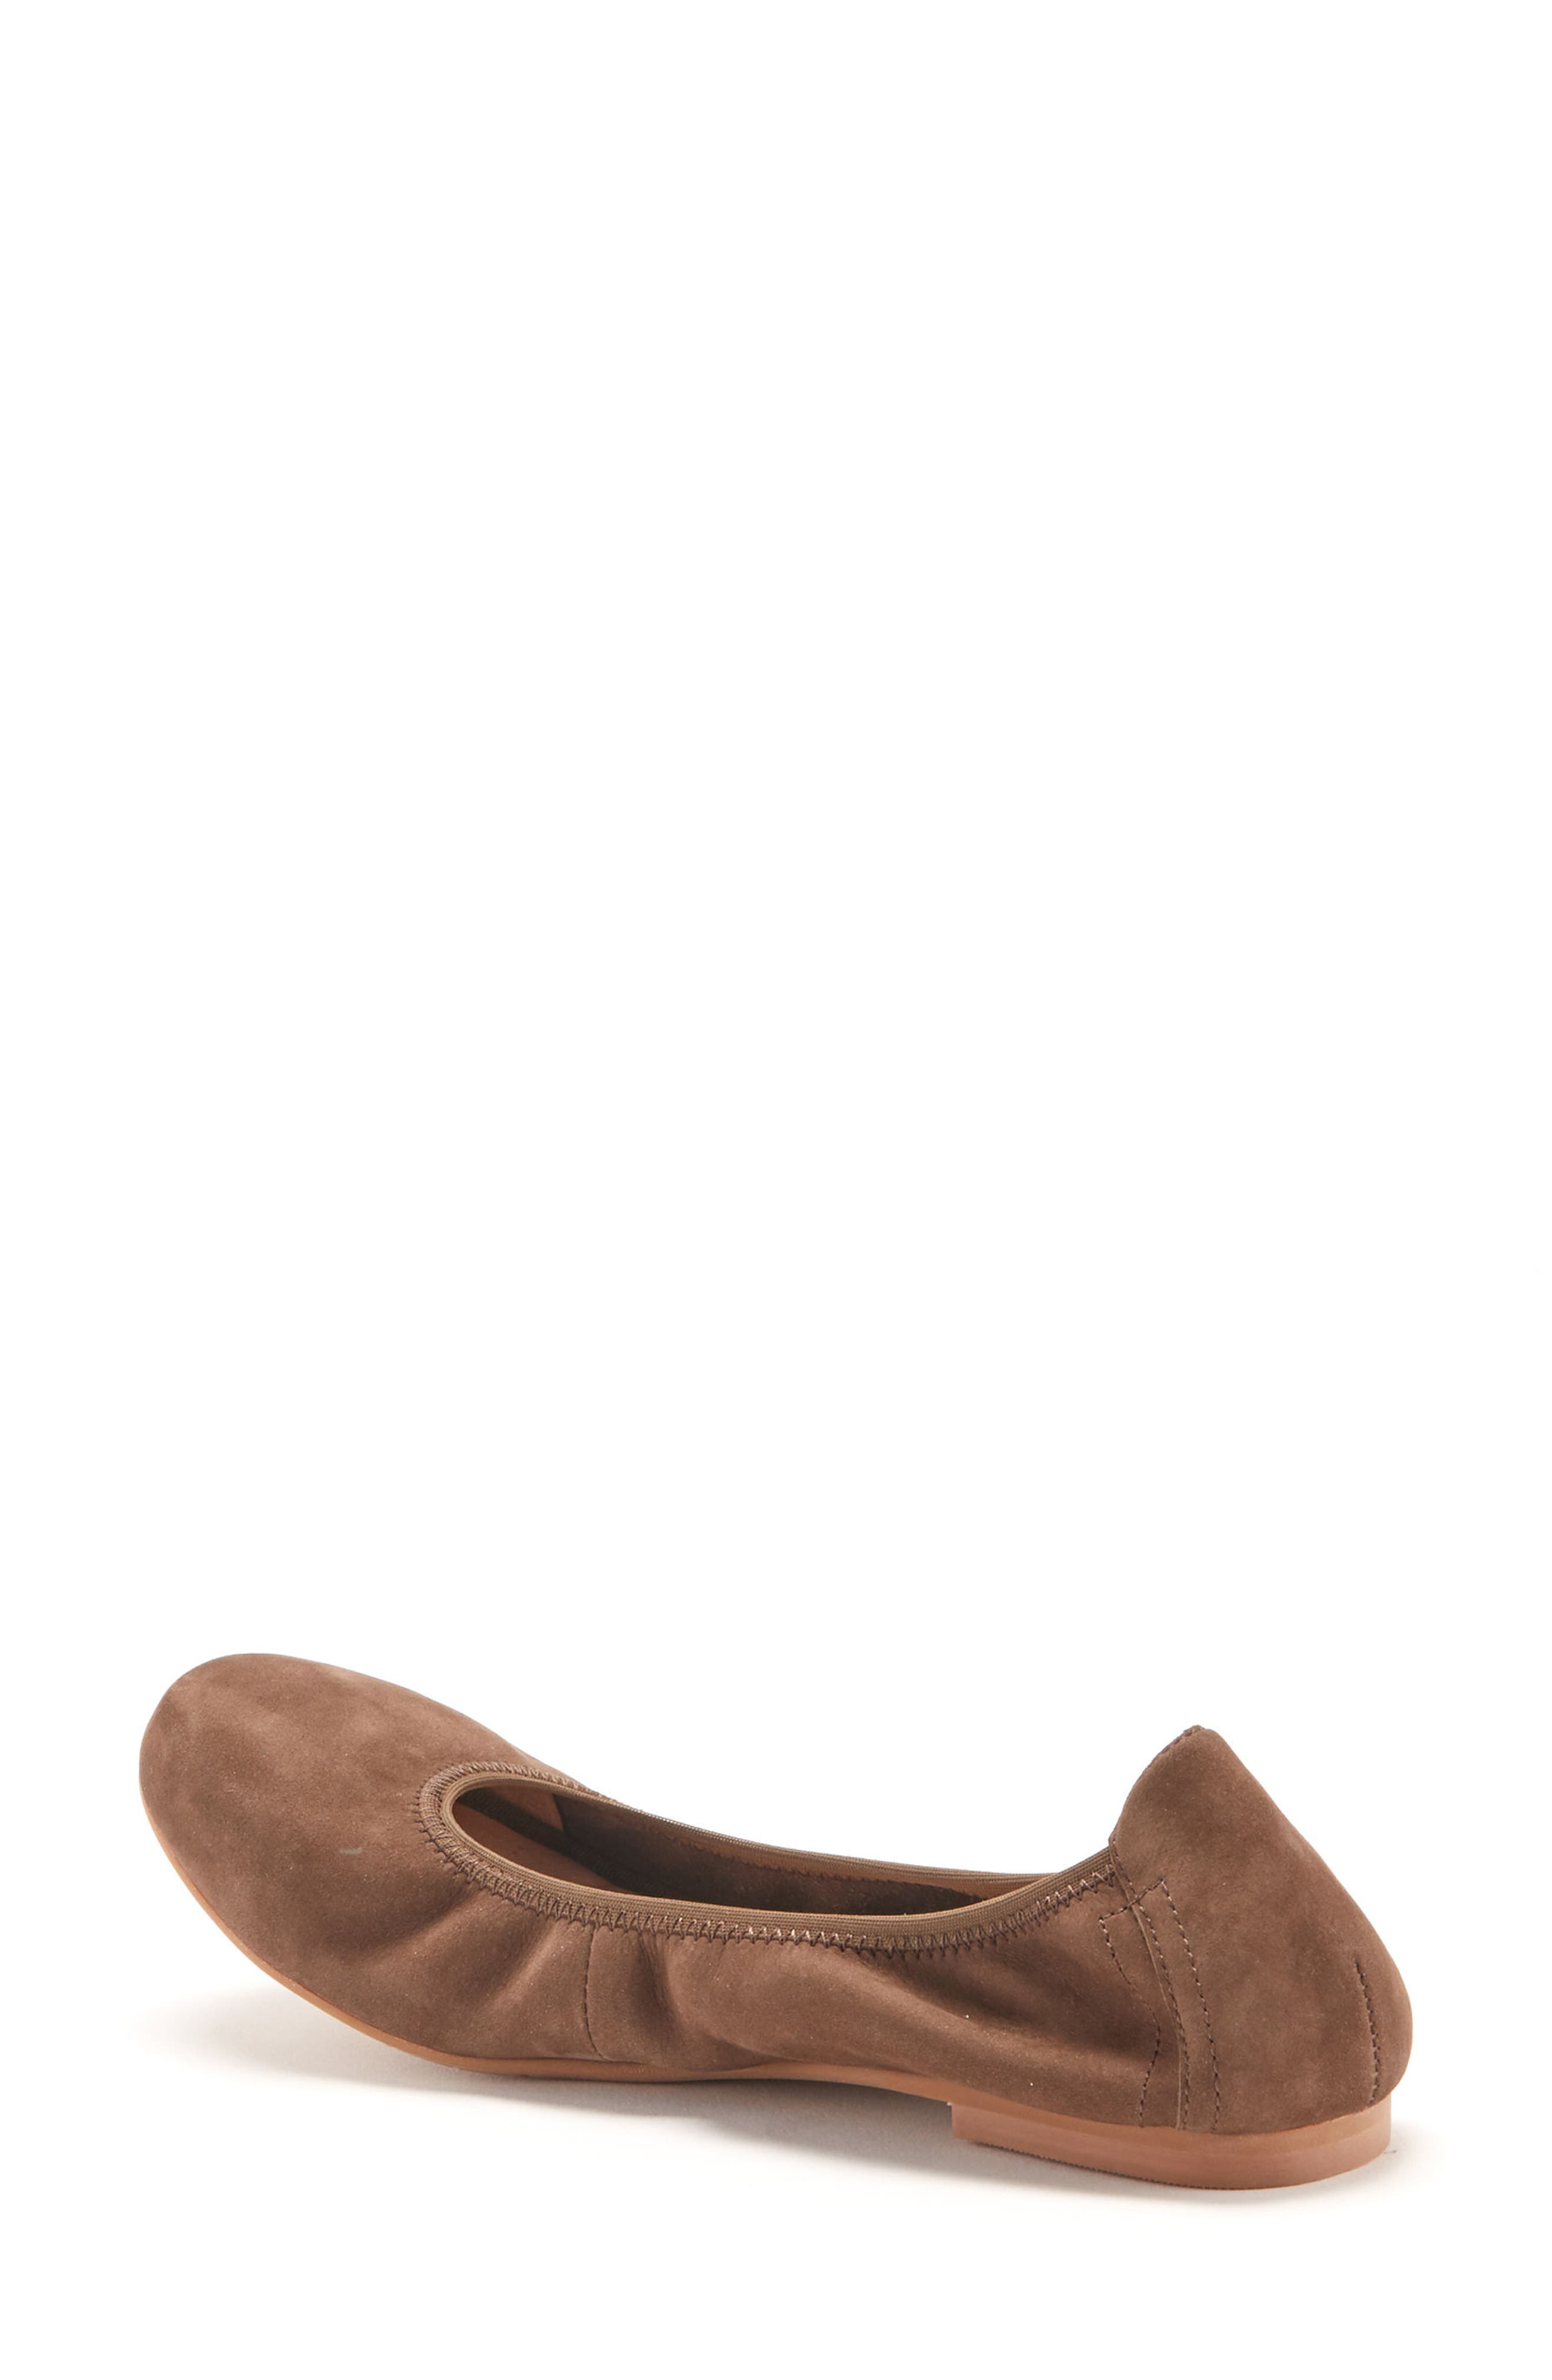 Becca Waterproof Flat,                             Alternate thumbnail 2, color,                             Taupe Nubuck Leather